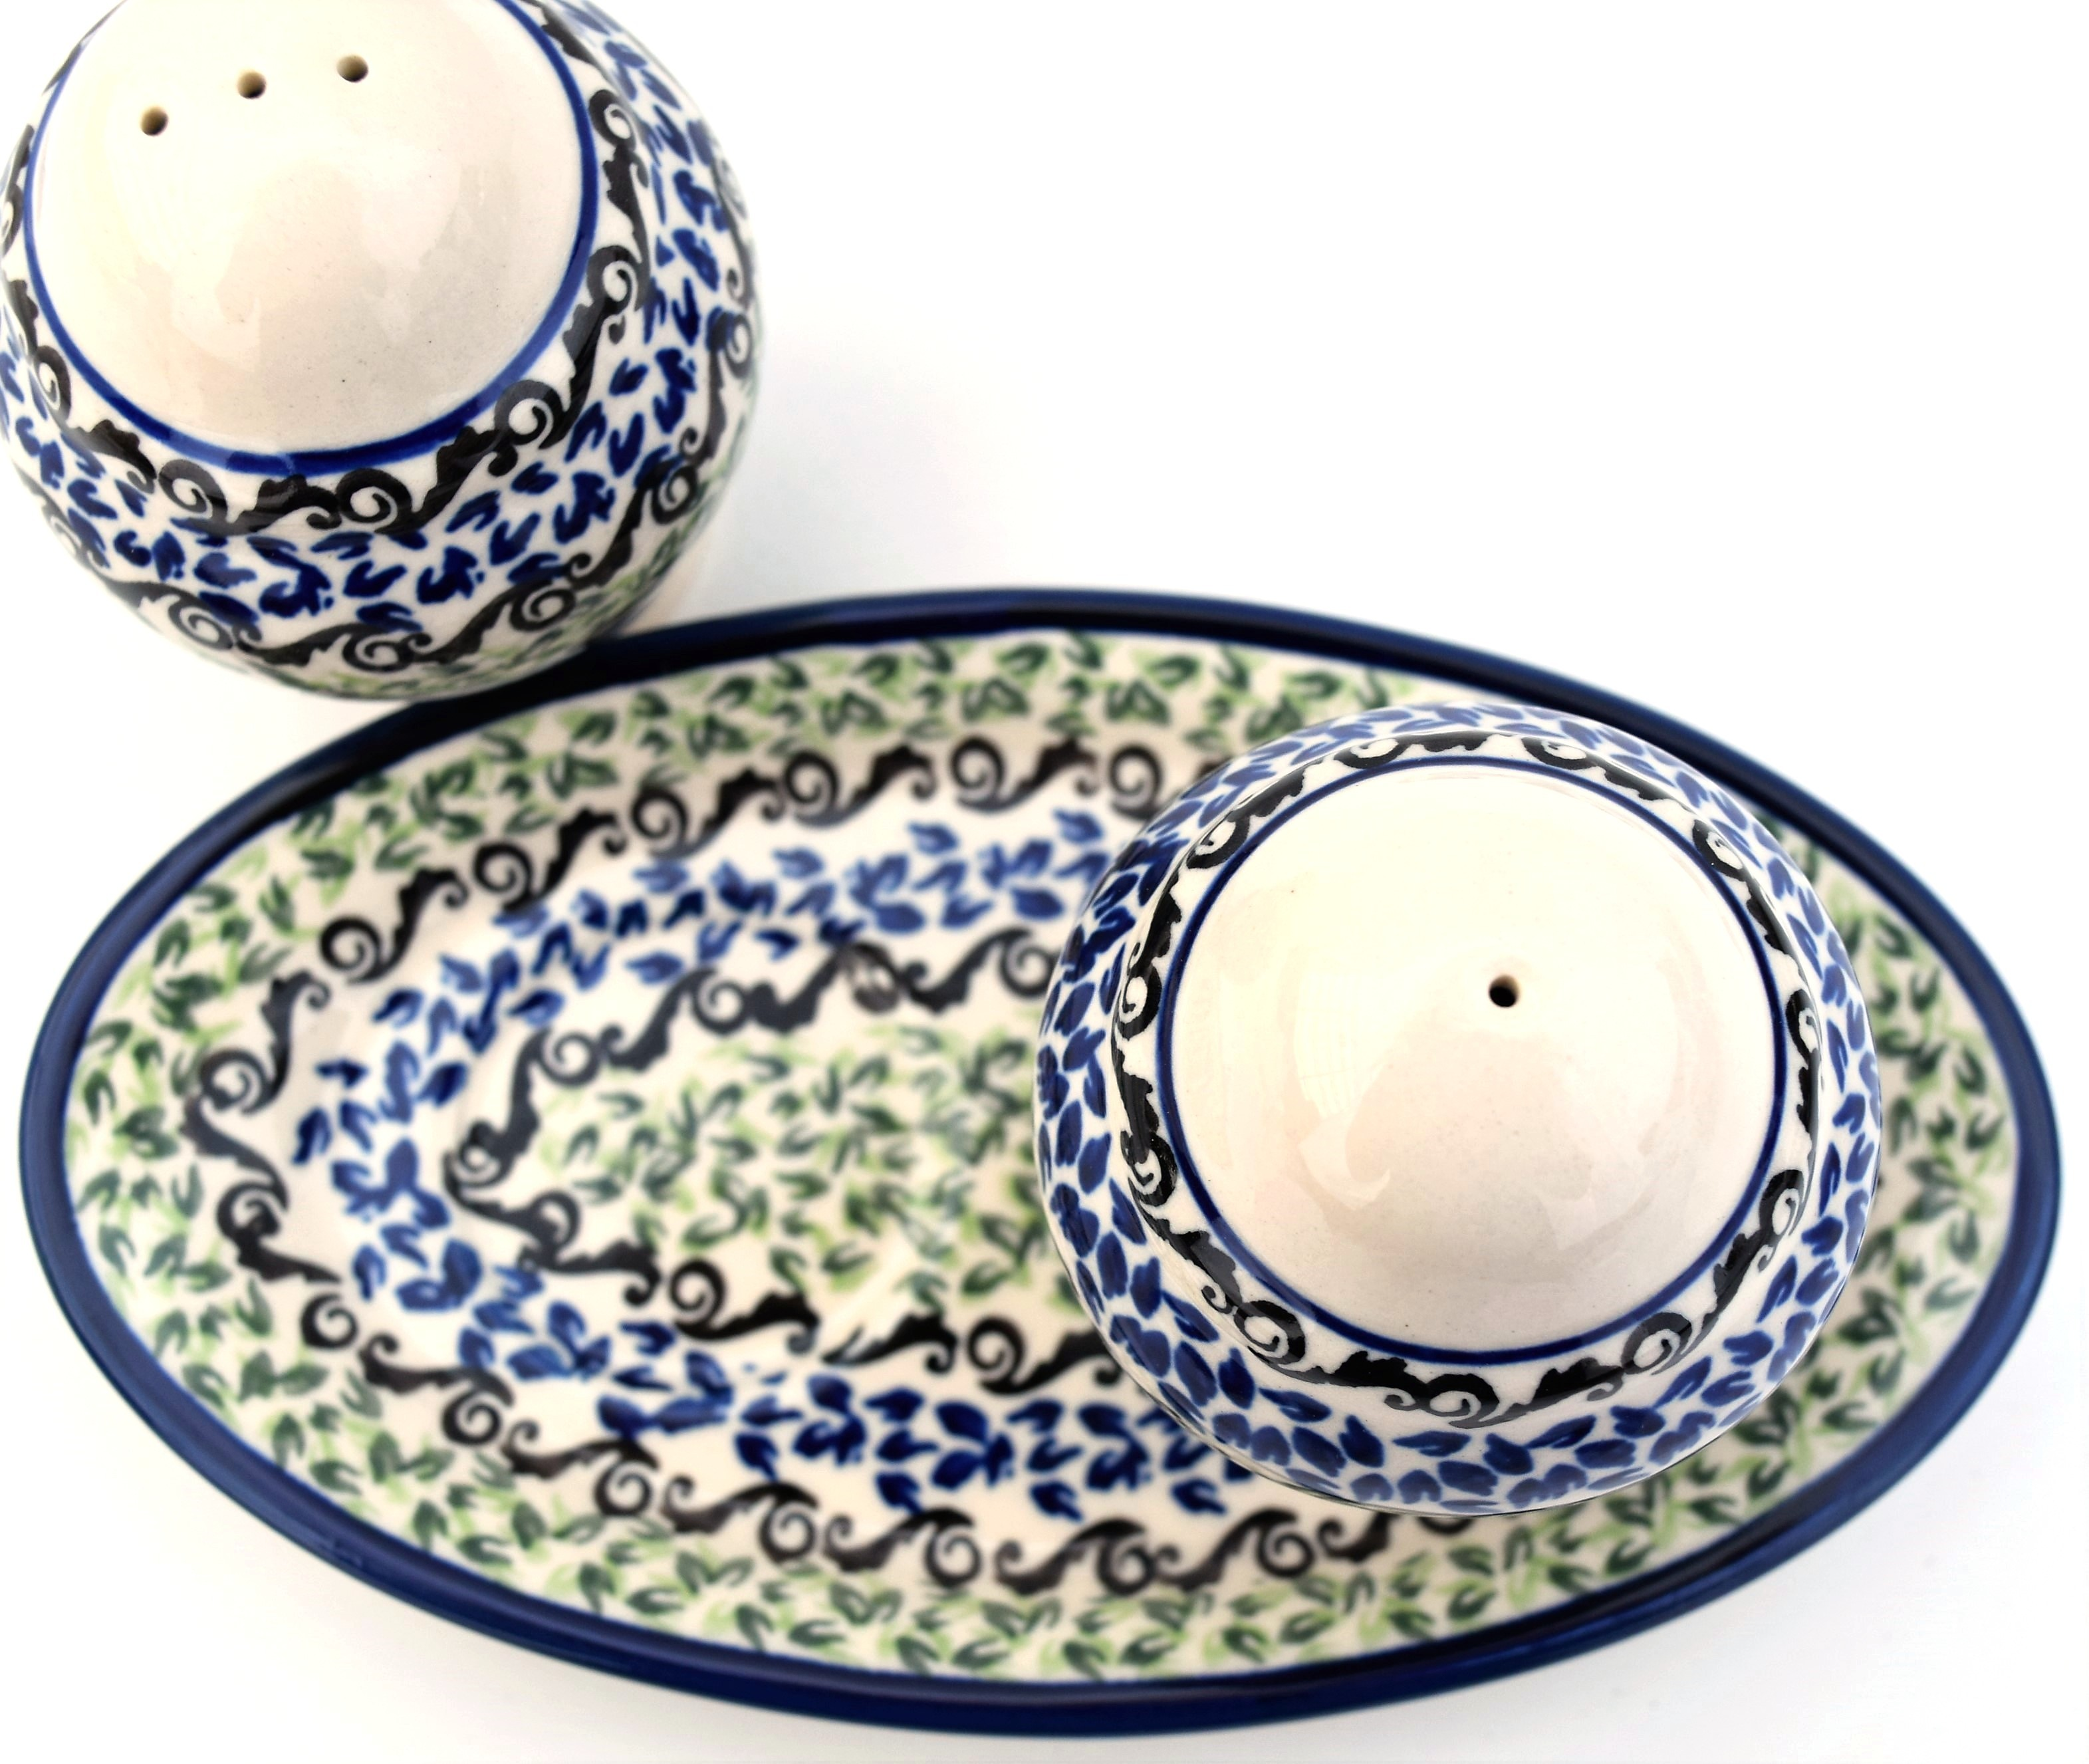 Pottery Avenue Celebrate 3pc Stoneware Salt and Pepper with Tray